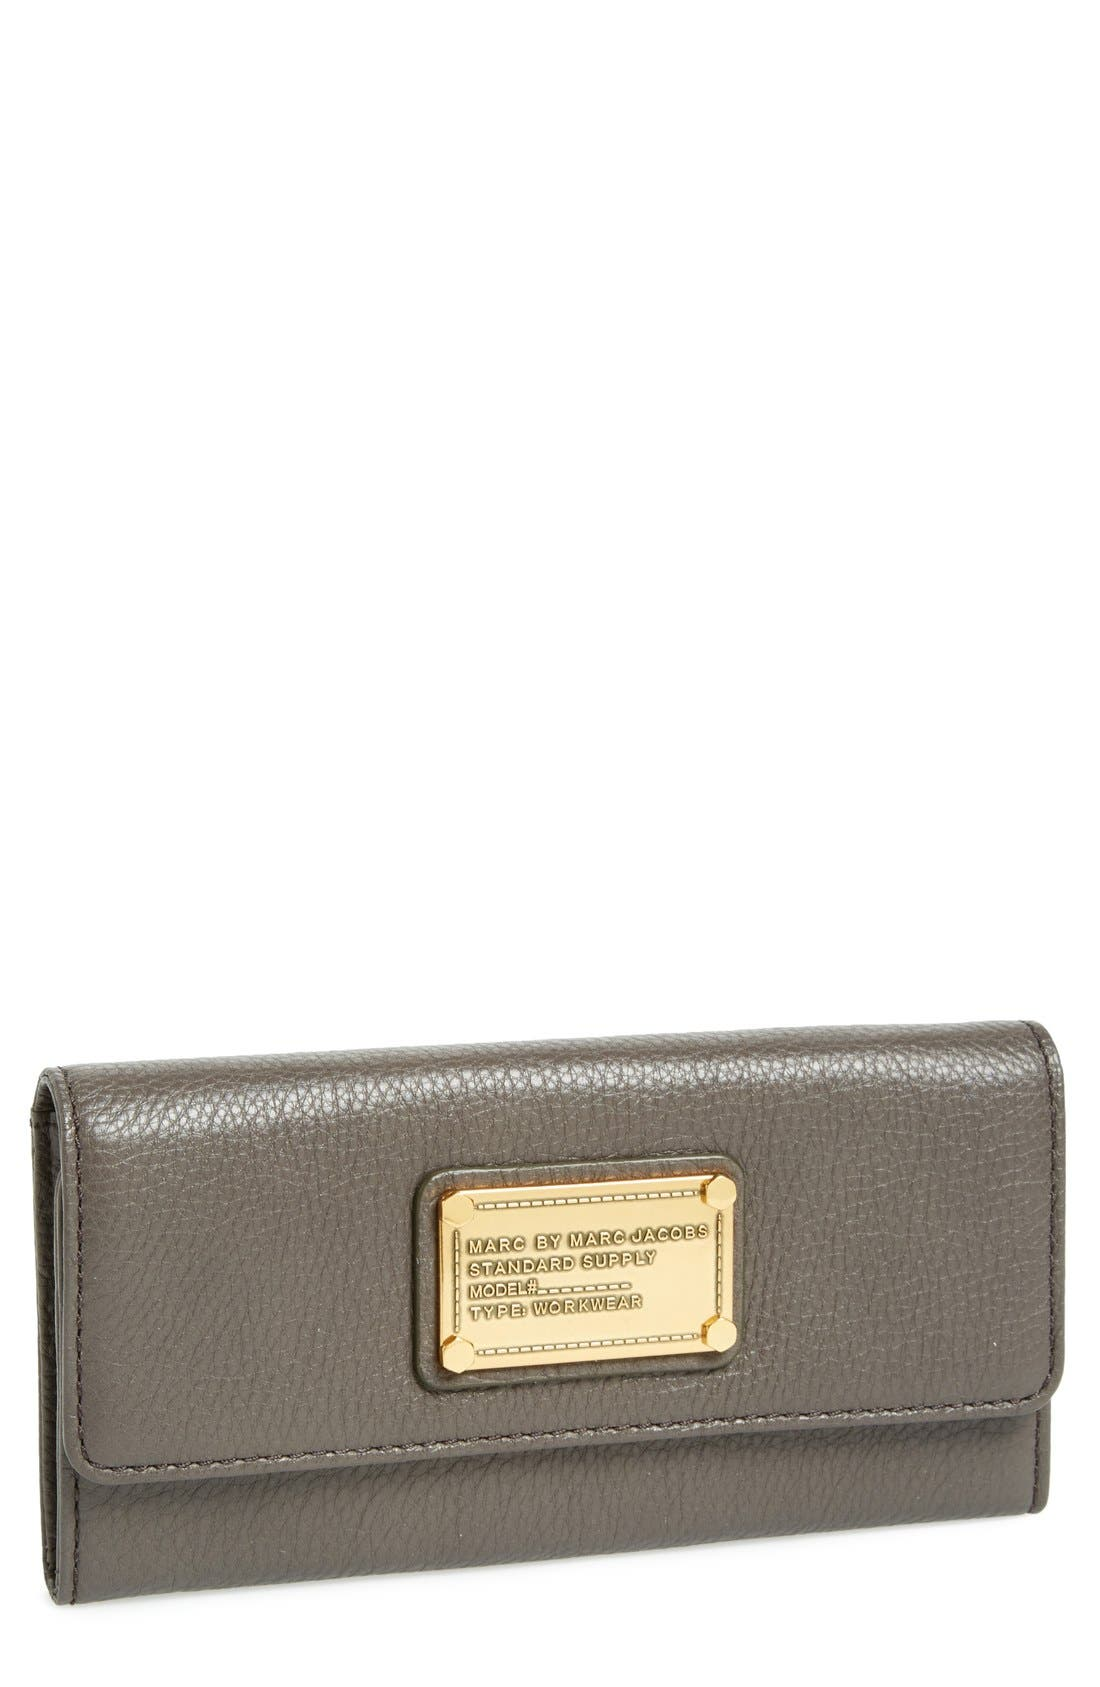 Main Image - MARC BY MARC JACOBS 'Classic Q - Long' Trifold Wallet